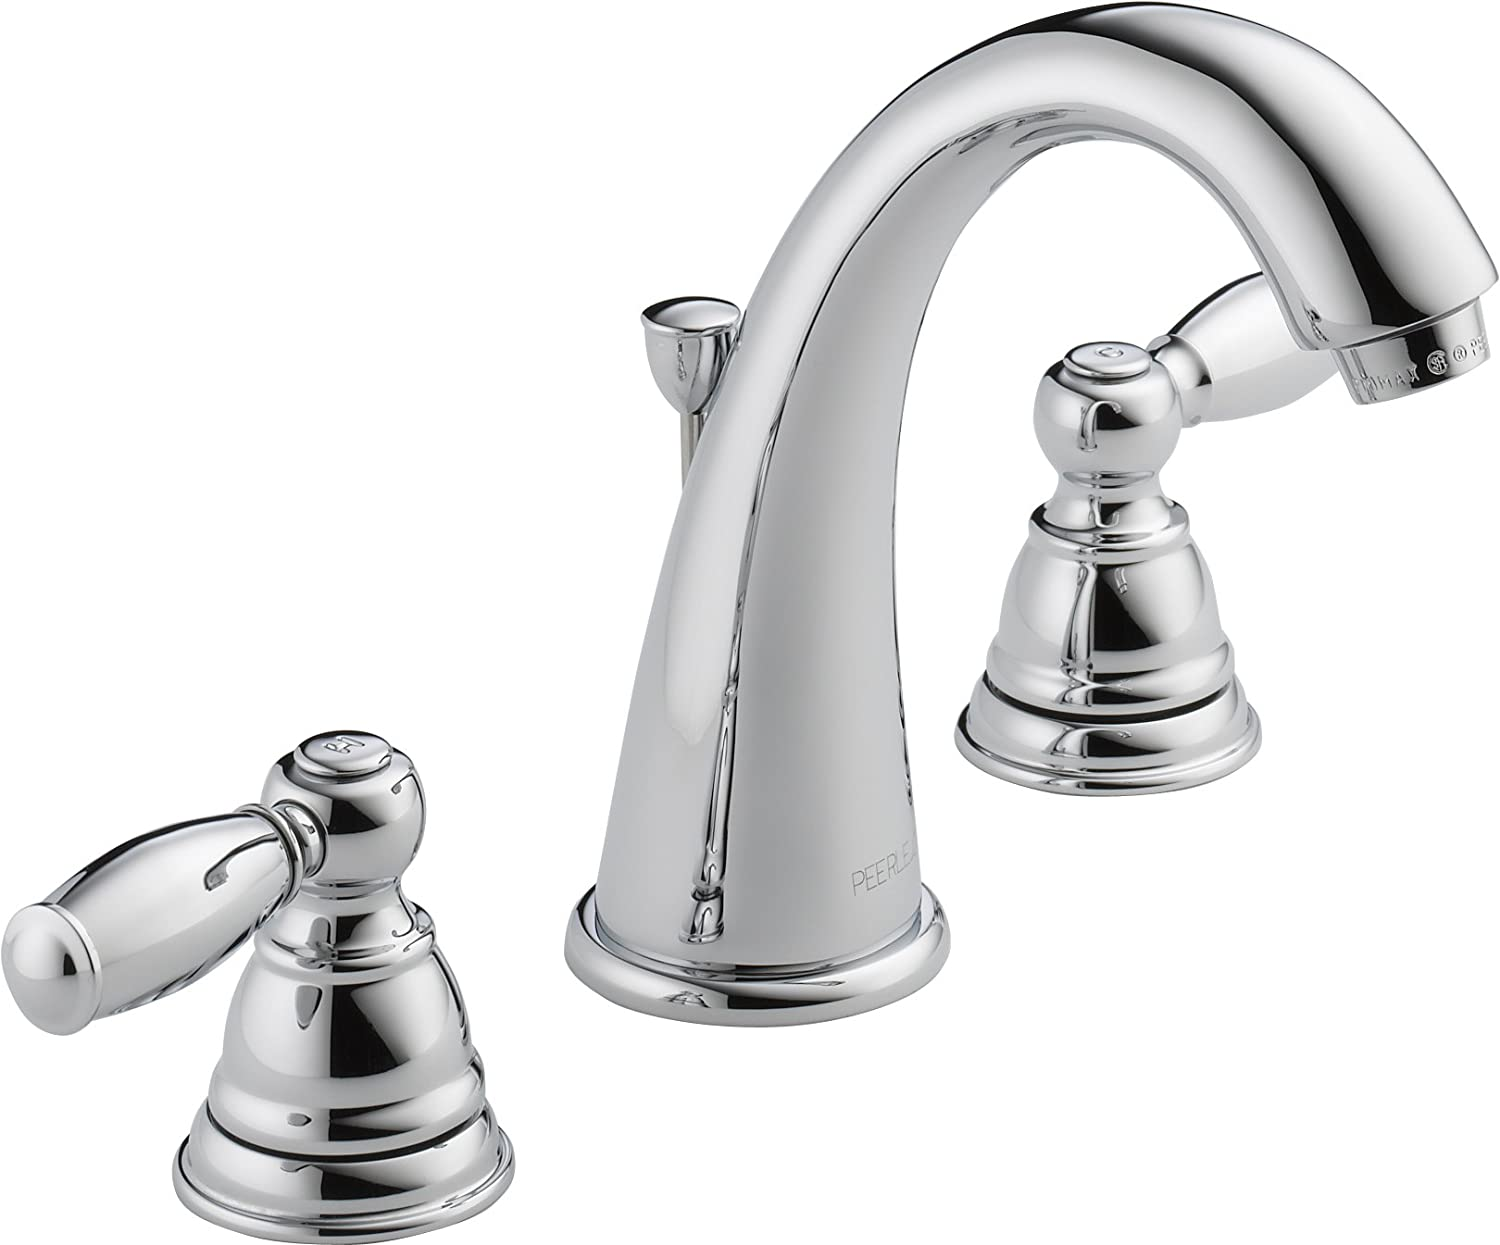 Peerless P299196LF Apex Two Handle Bathroom Faucet, Chrome - Touch ...